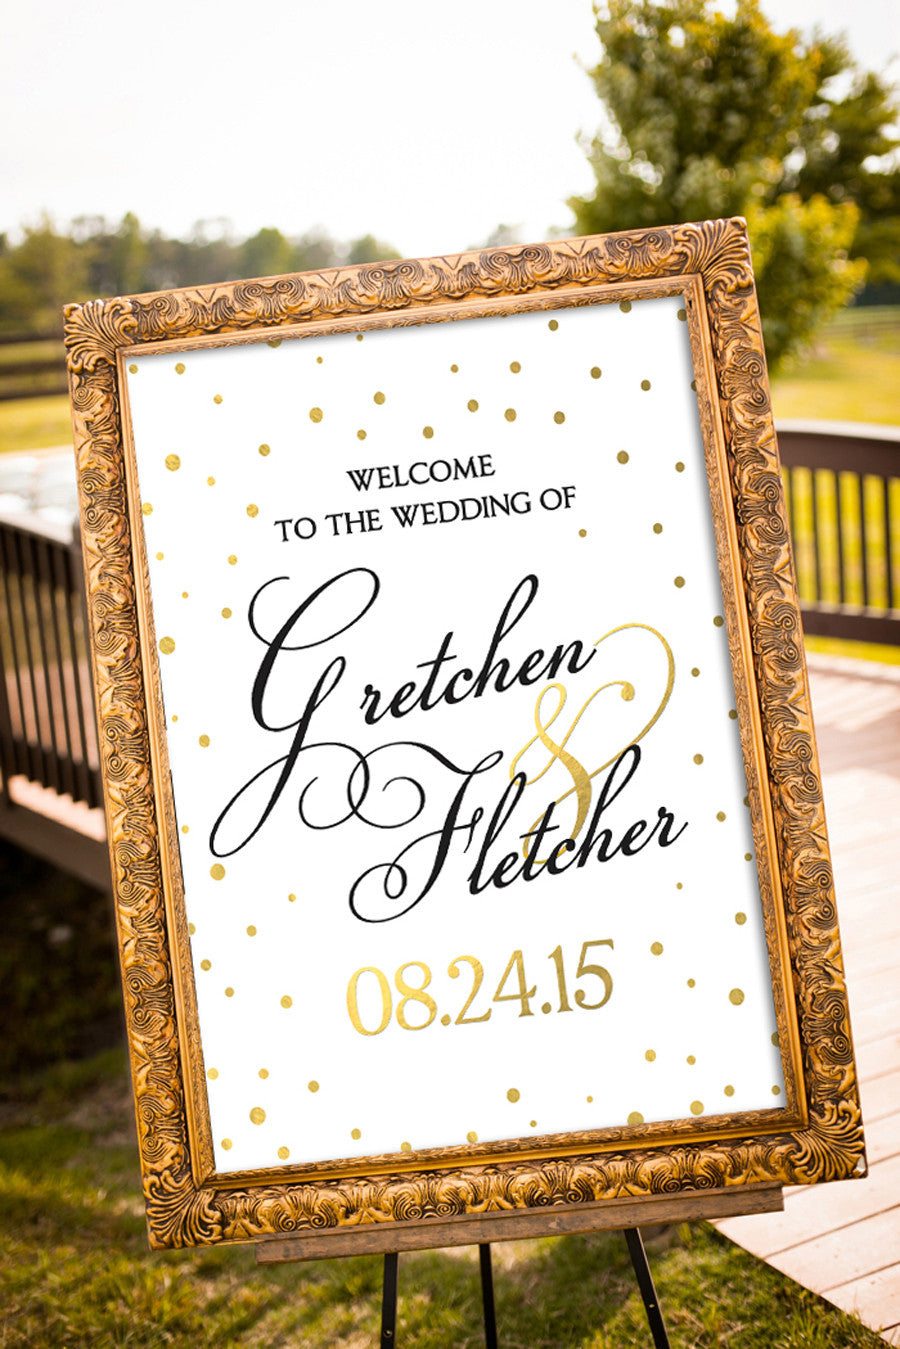 photograph relating to Wedding Signs Printable named Printable Black and Gold Wedding day Symptoms - Confetti